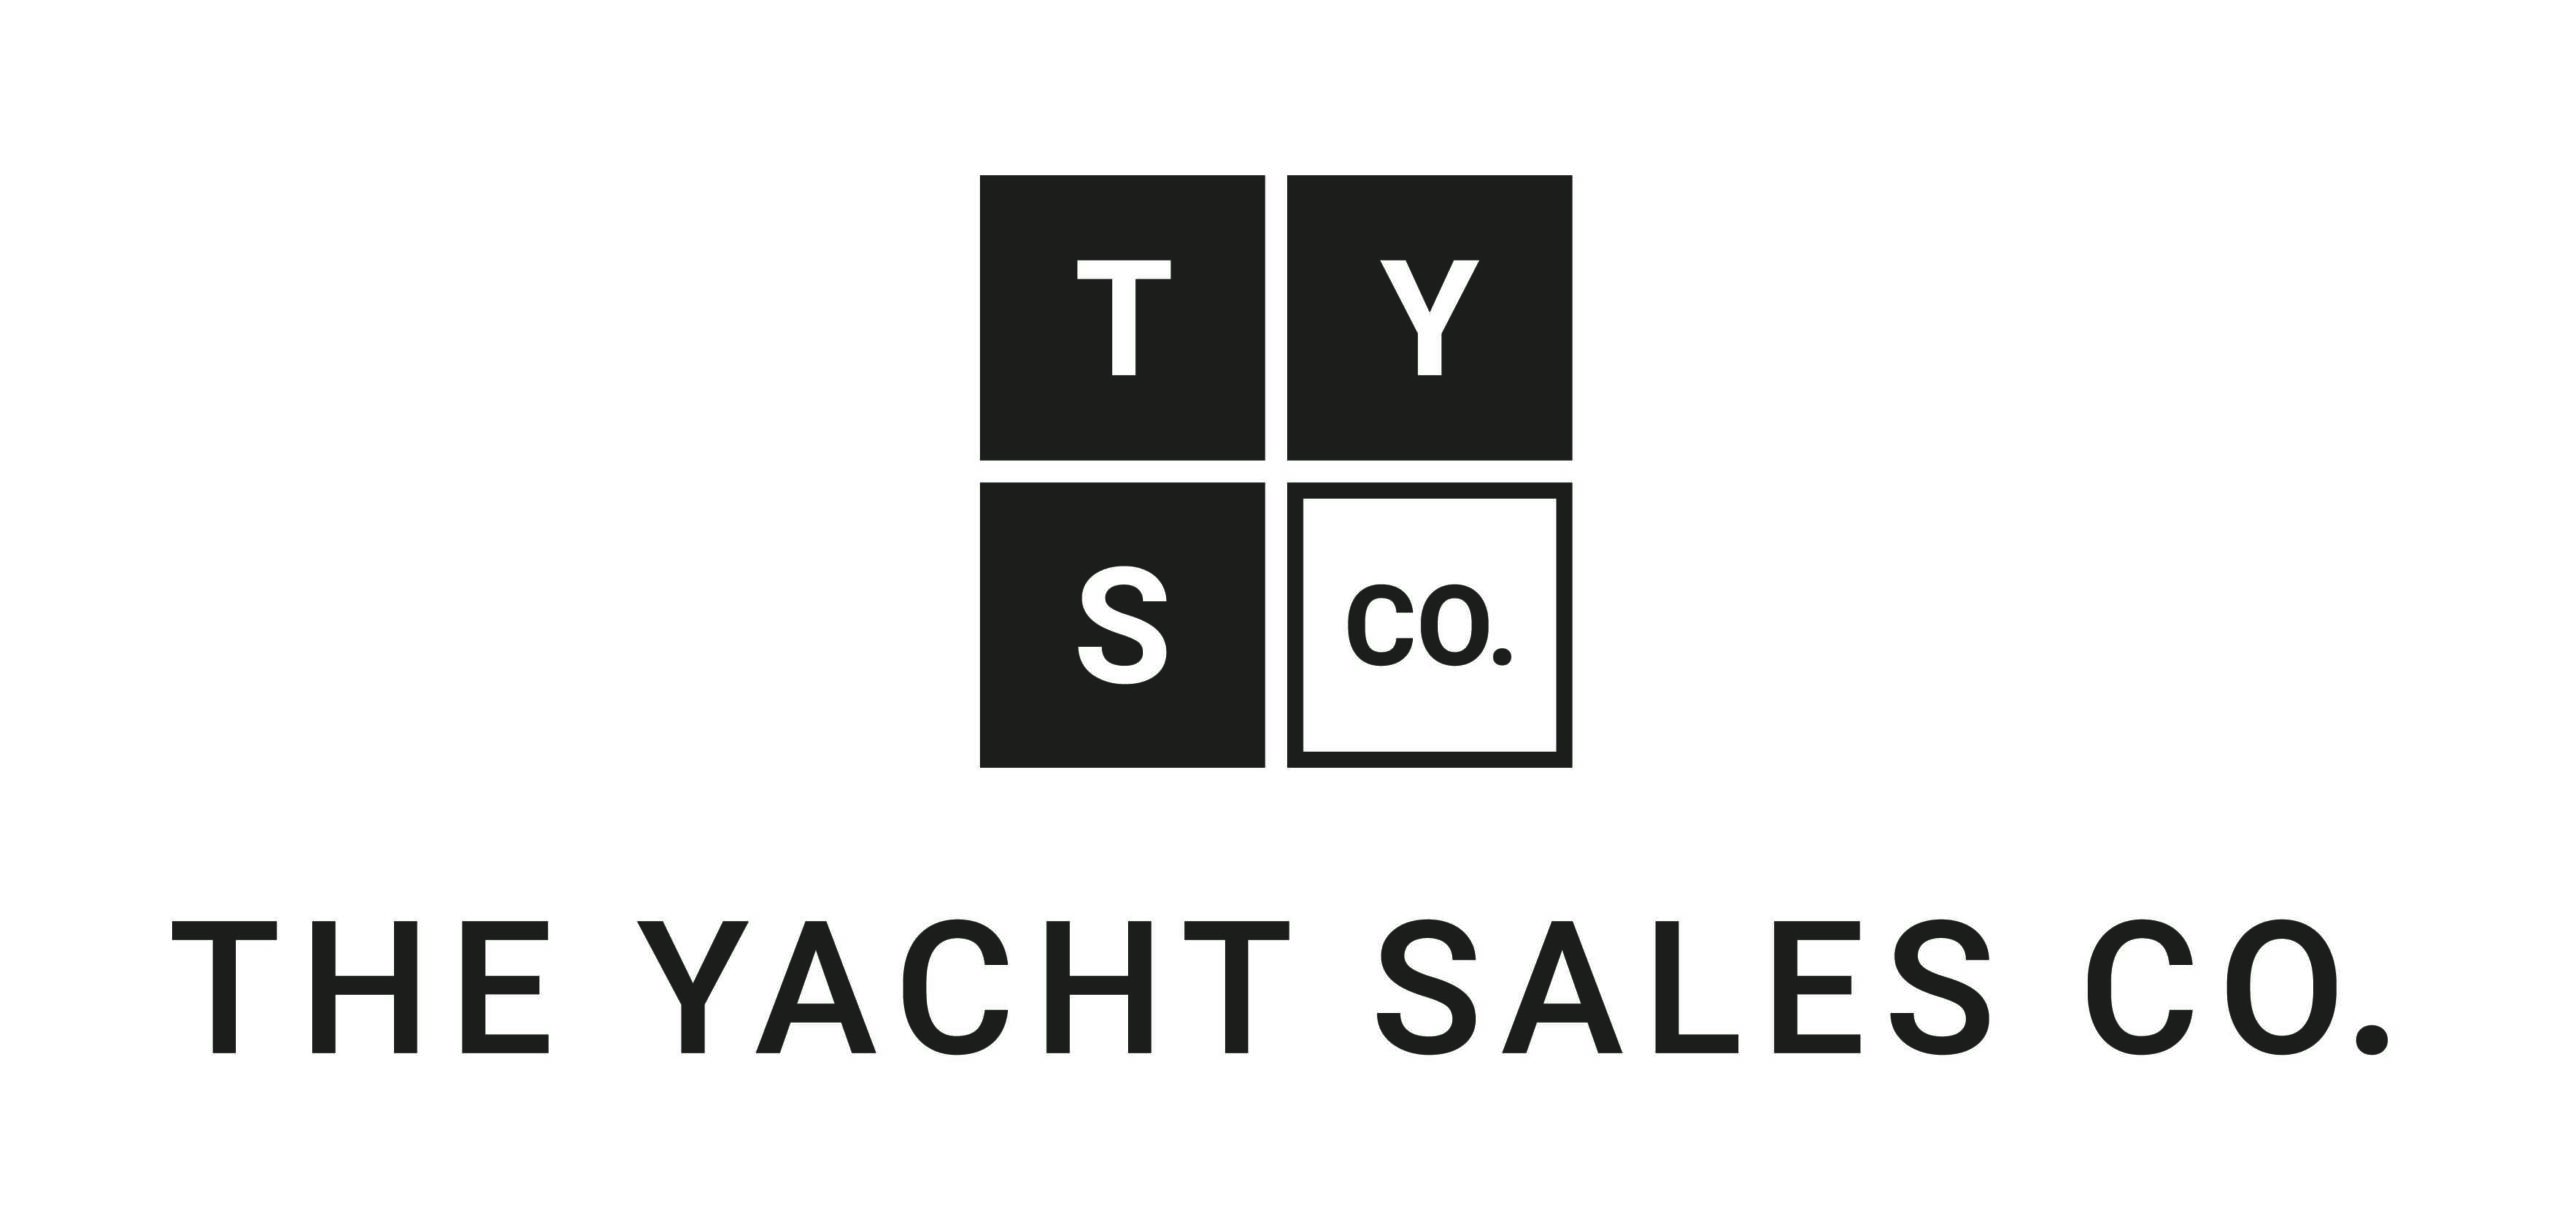 TYS Yacht Sales Exhibitor at The Thailand International Boat show